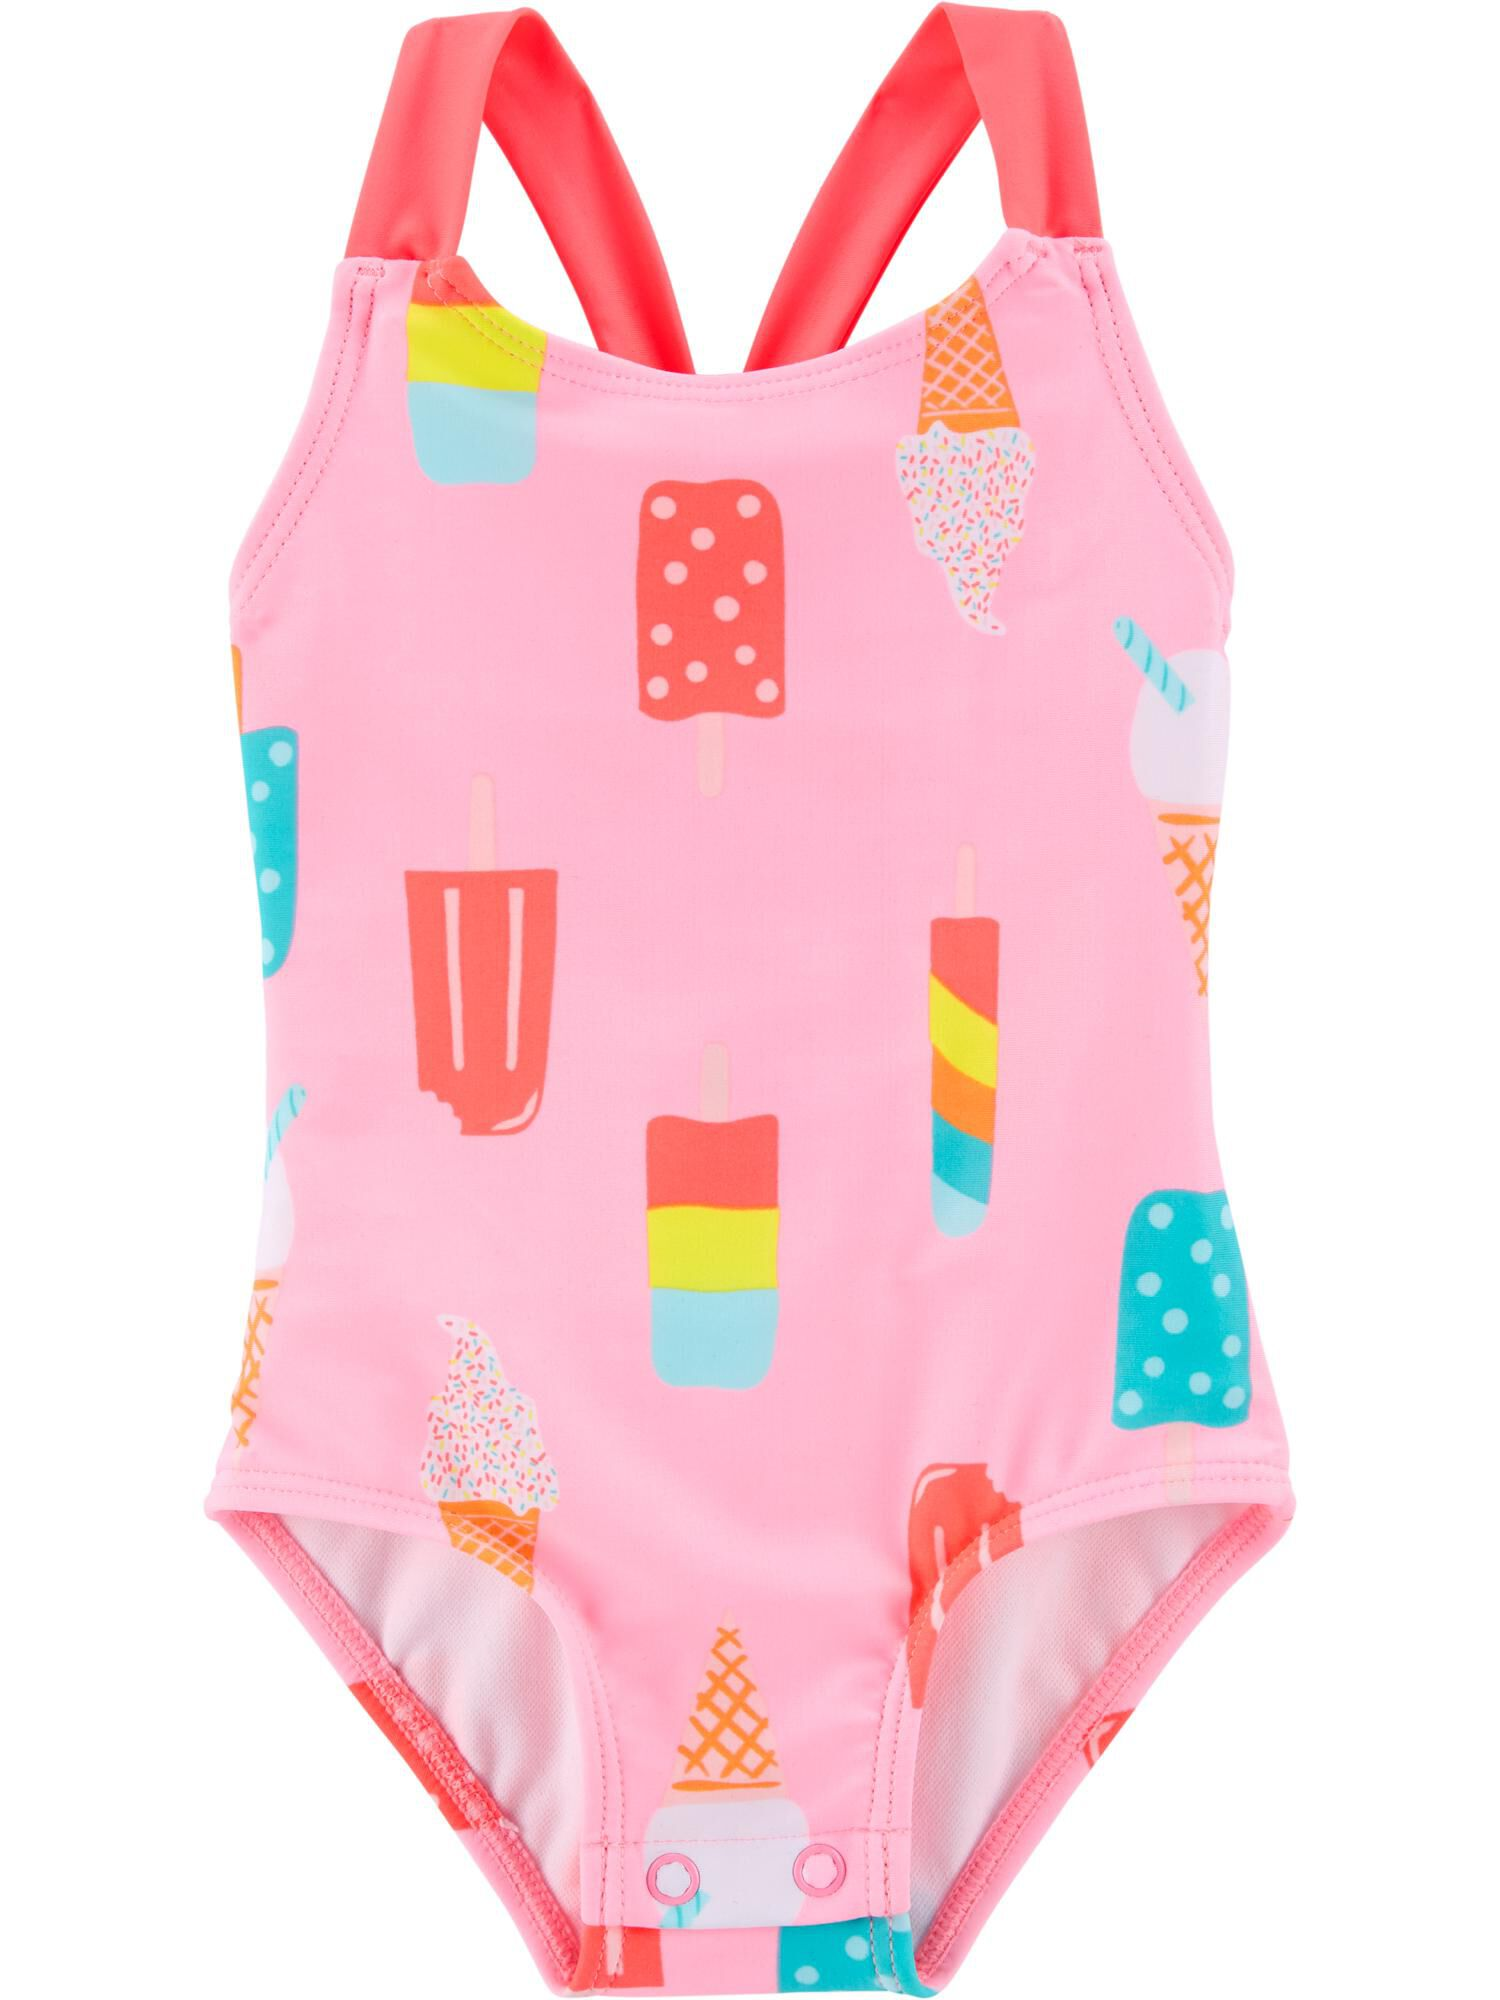 Limited Too Girls Striped Two Piece Short Sleeve Swimsuit with Heart Graphic